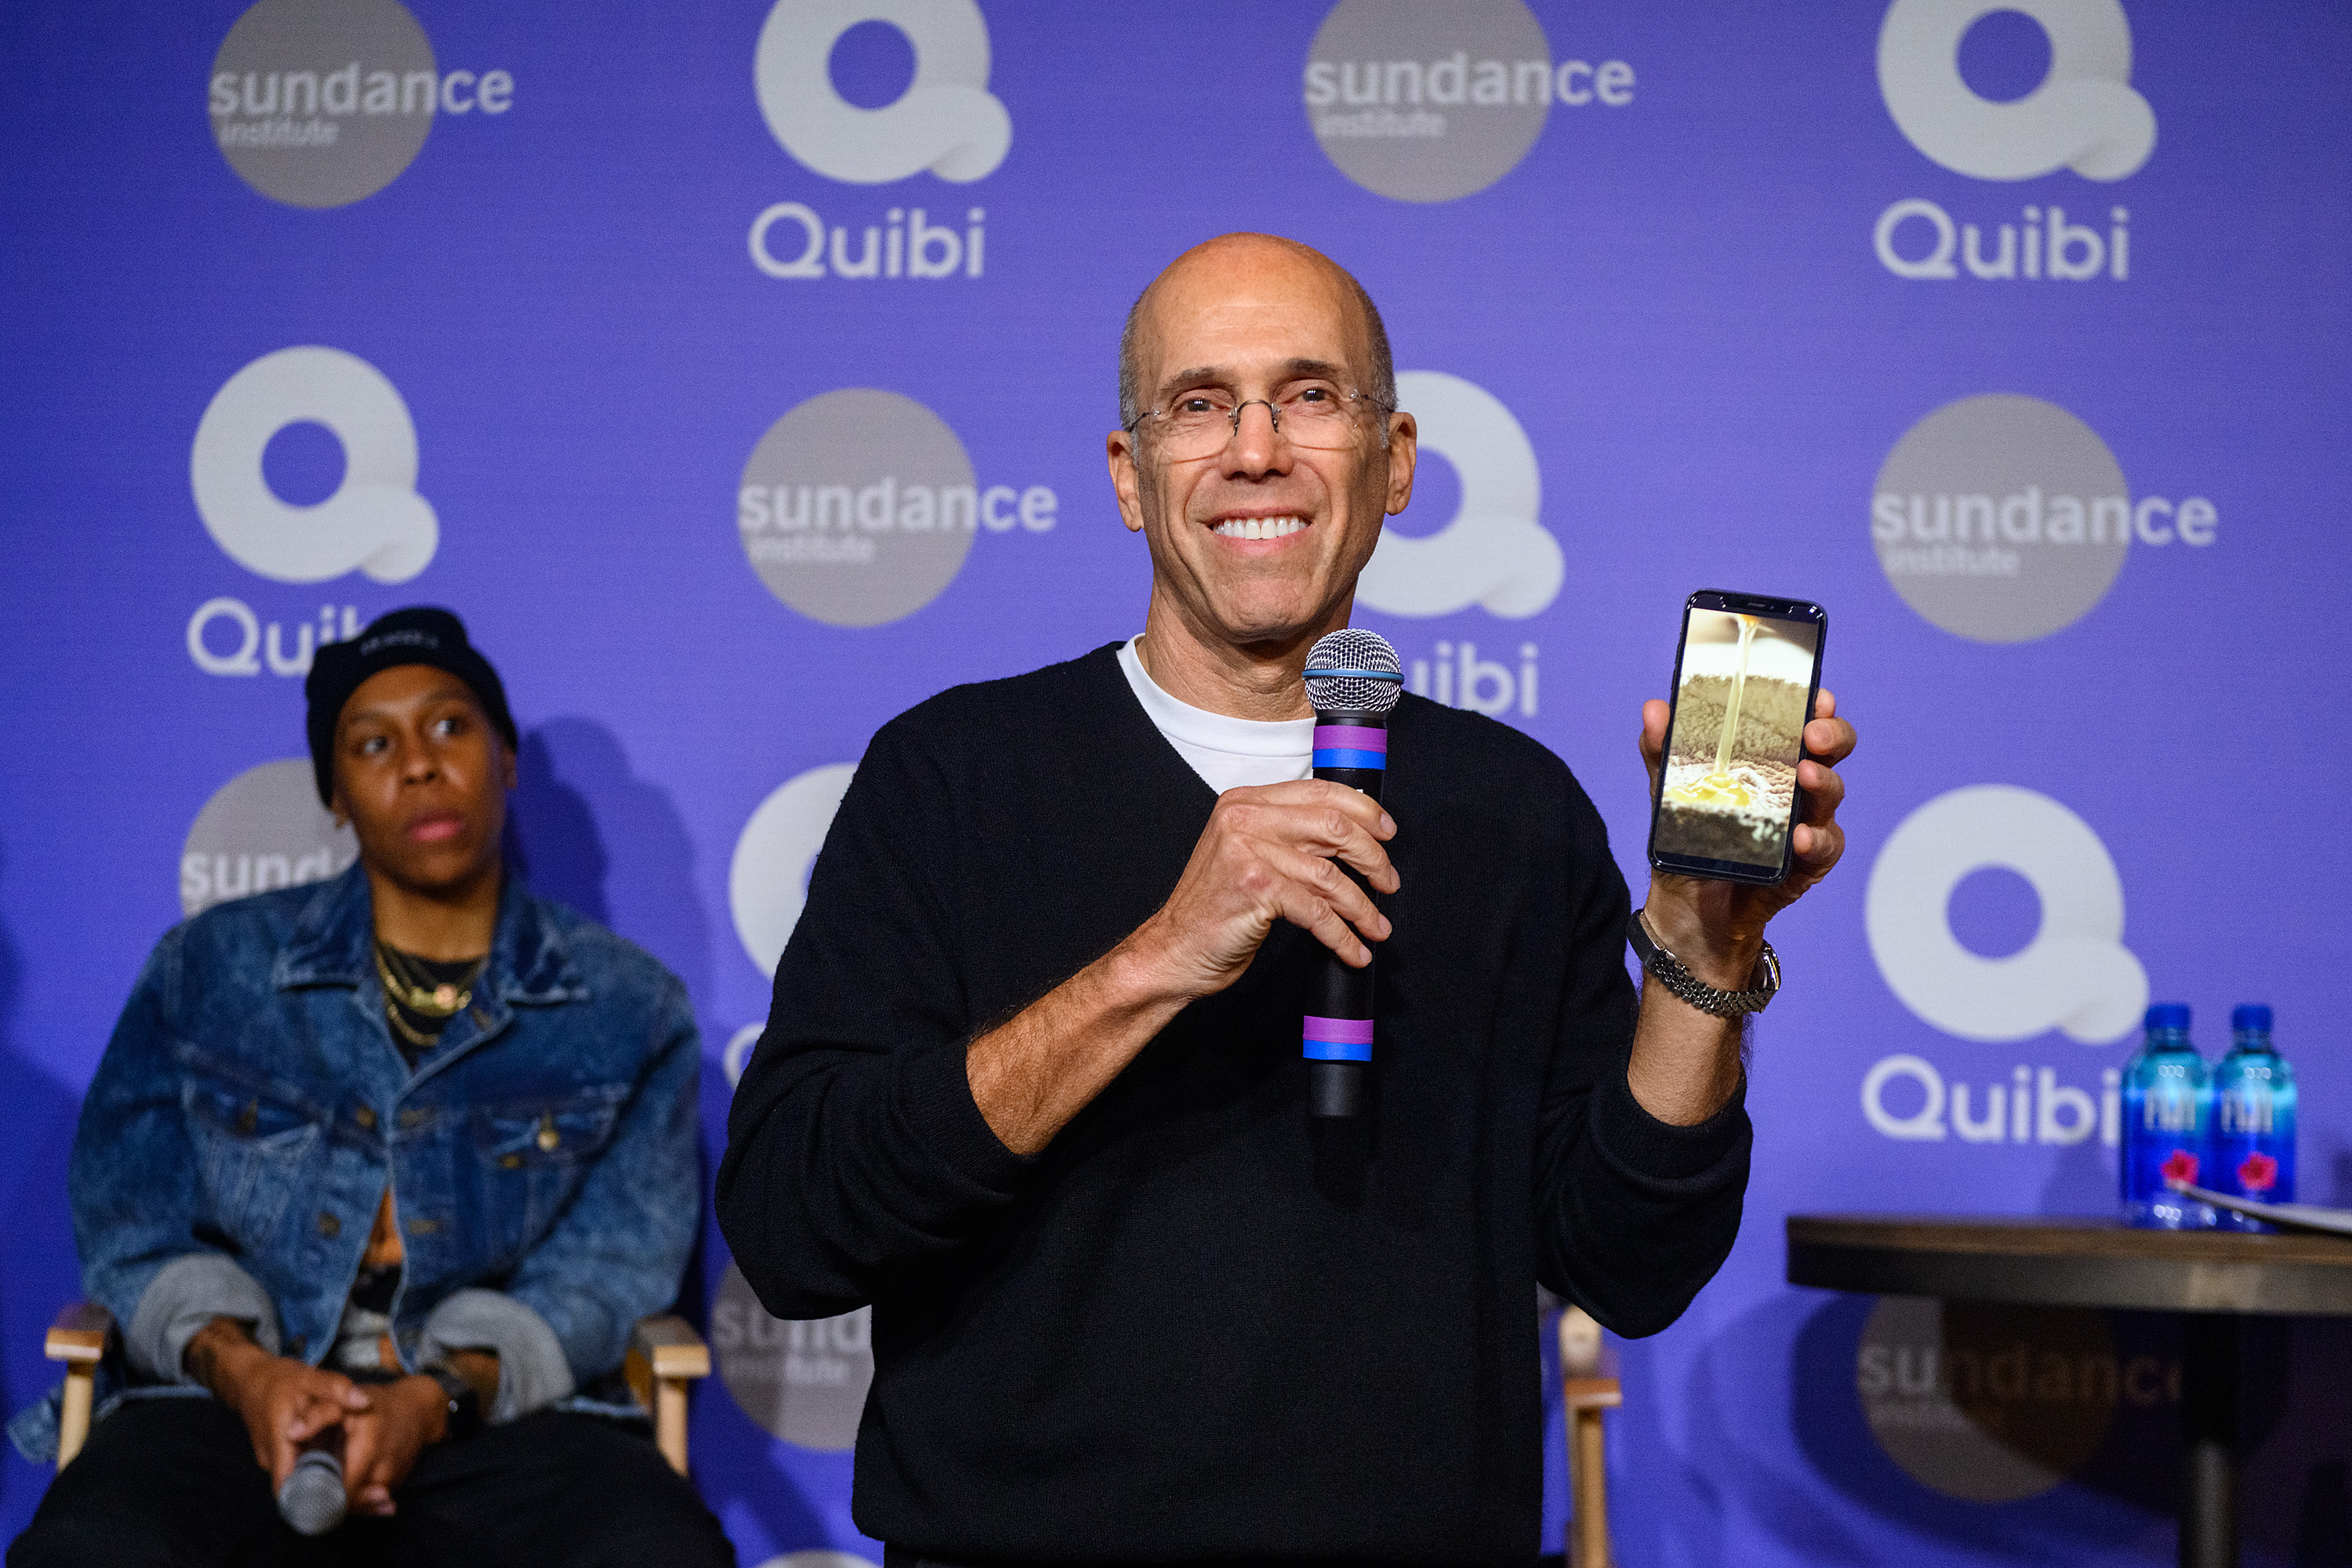 Quibi, the on-the-go streaming service, says it could benefit from people staying home